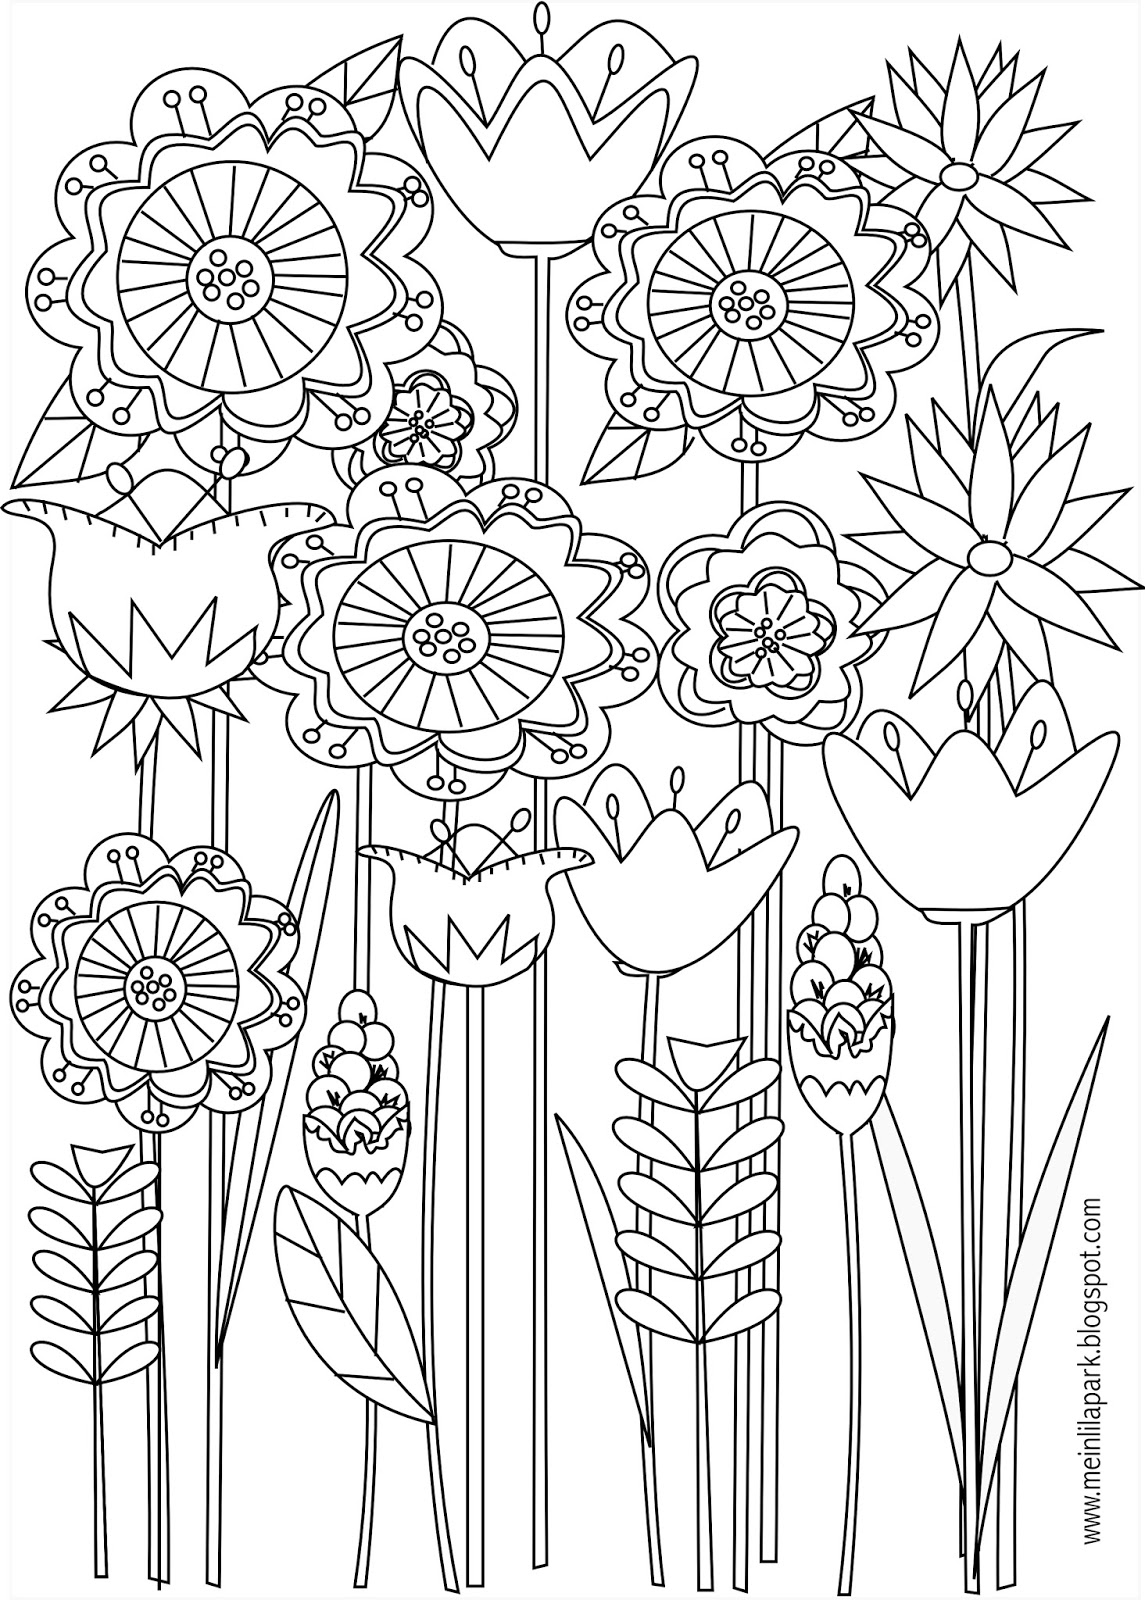 flower coloring pages free printable free printable flower coloring pages for kids best printable flower pages free coloring